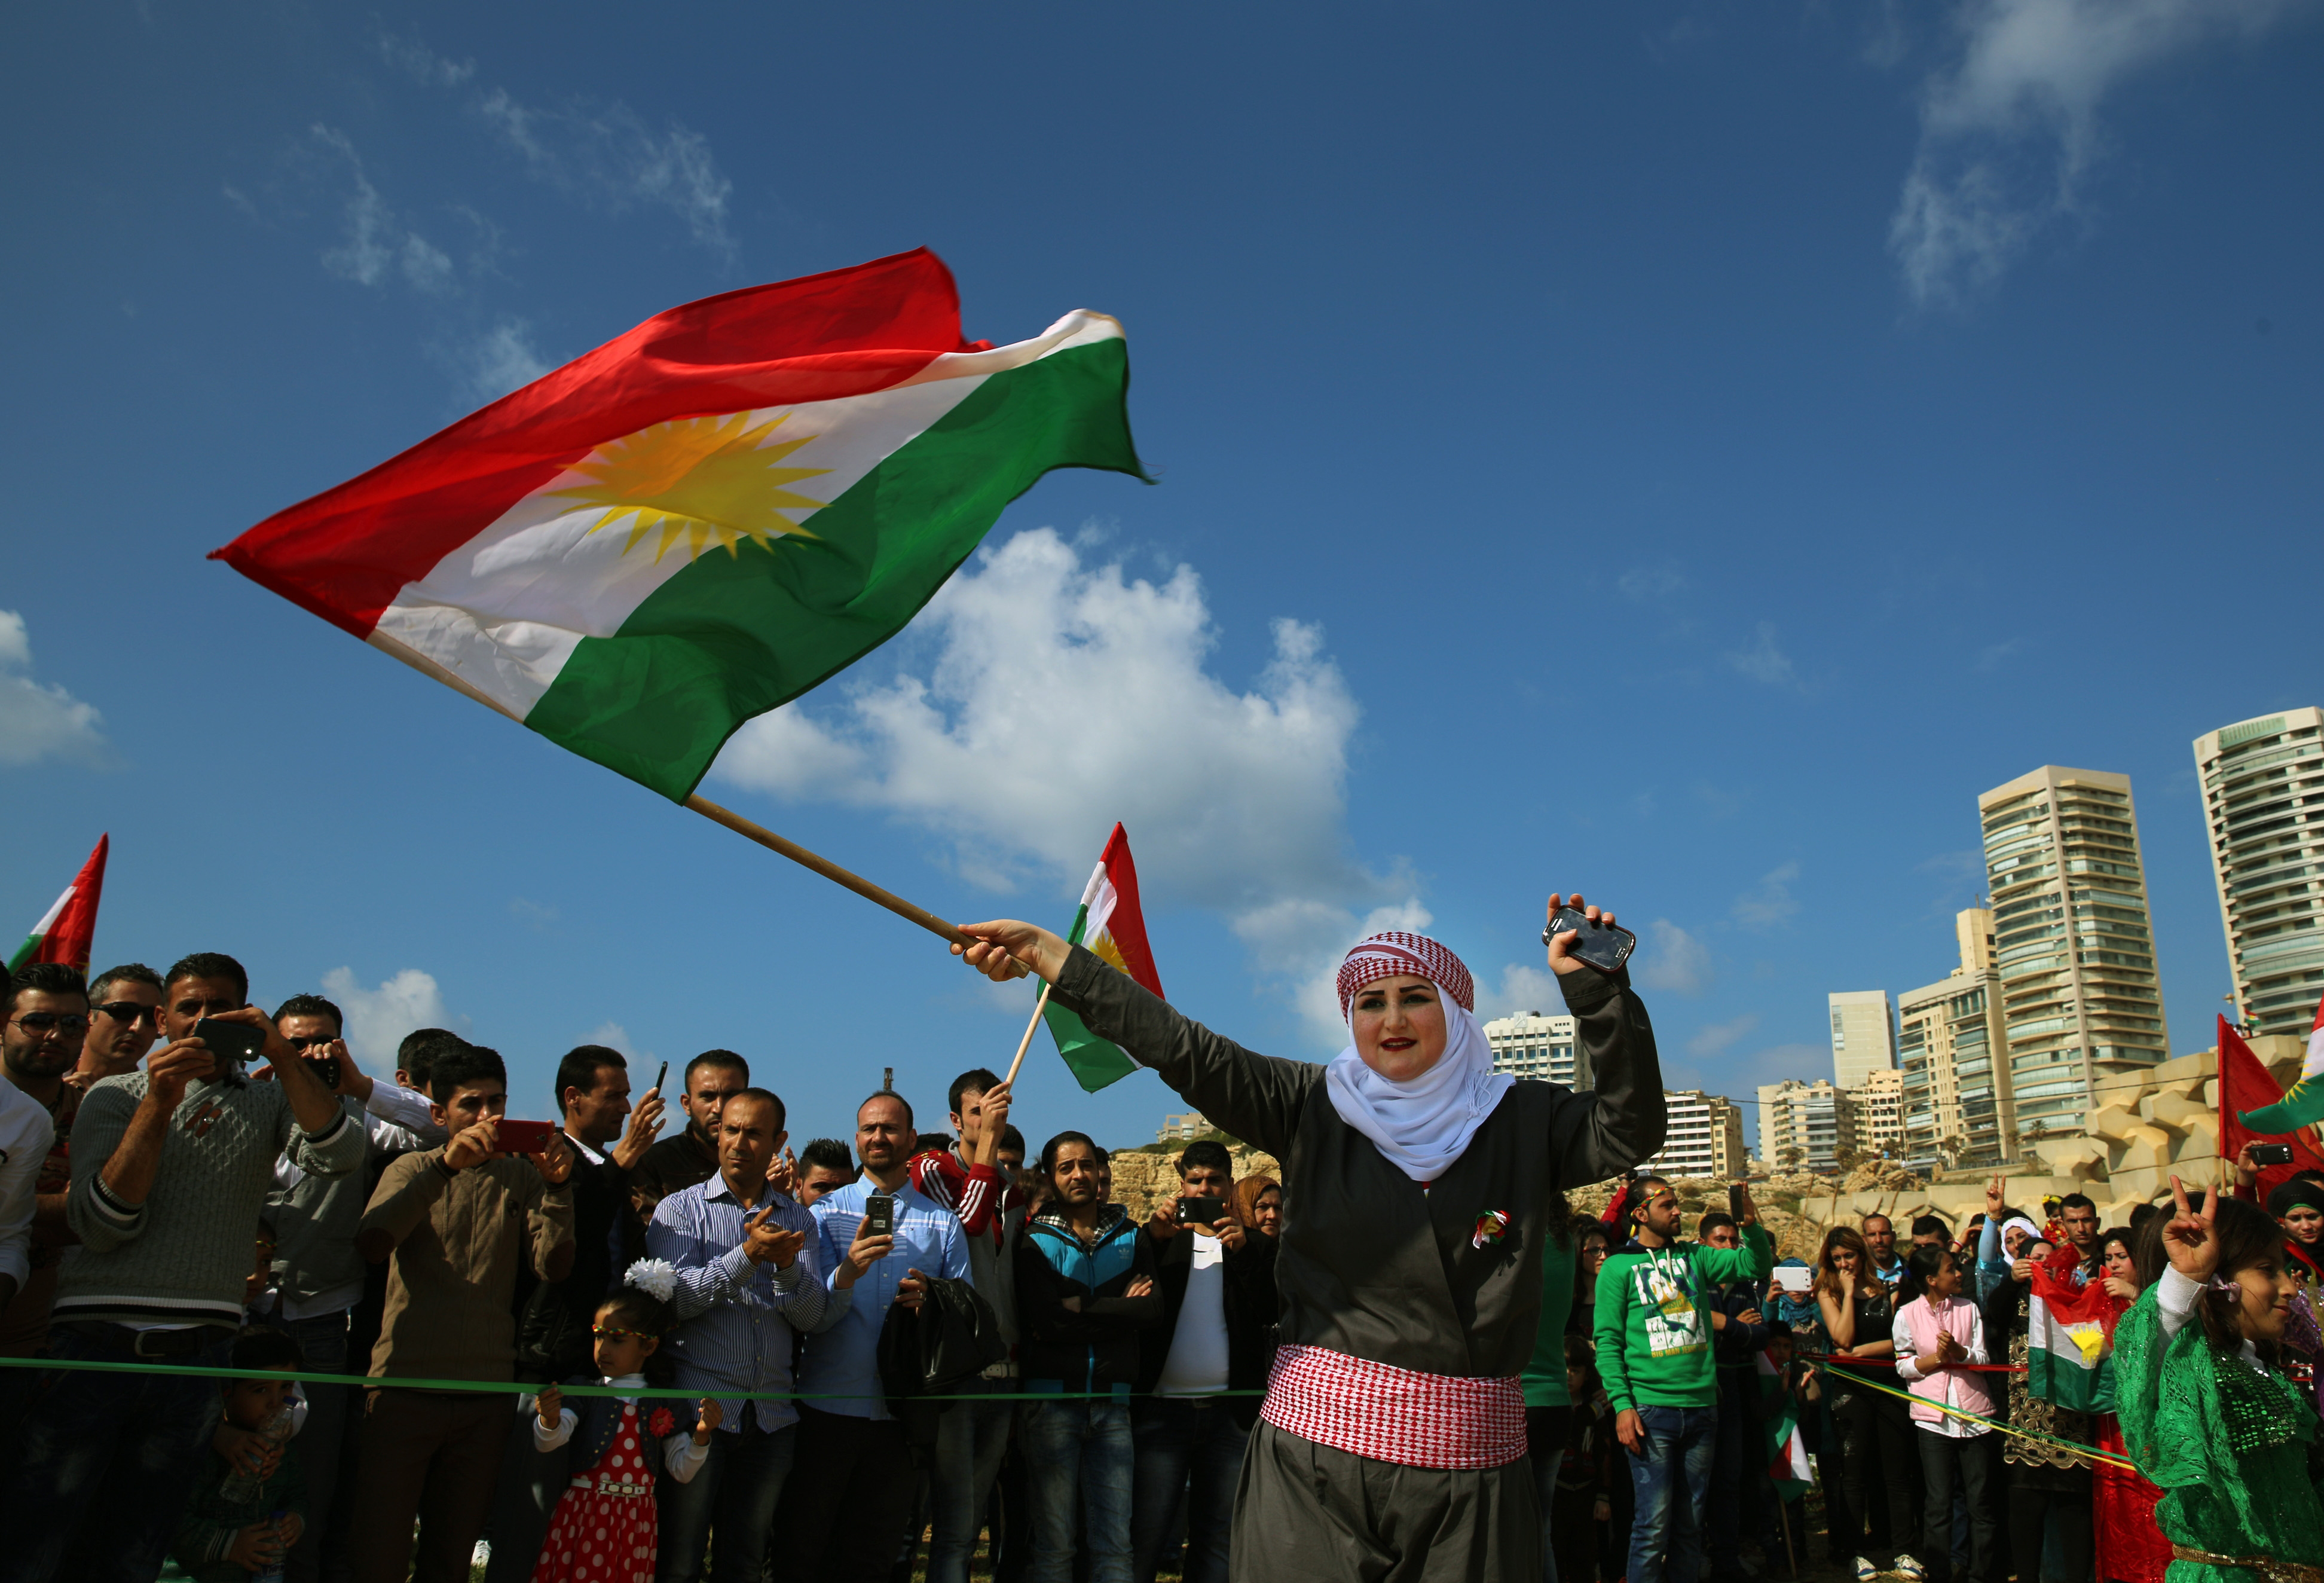 Syrian Kurd Nazdan, who fled her home in Qamishli, Syria, wears traditional clothes as she dances and waves a Kurdish flag, during a celebration of Nowruz day, in Beirut, Lebanon, Mar. 21, 2016.